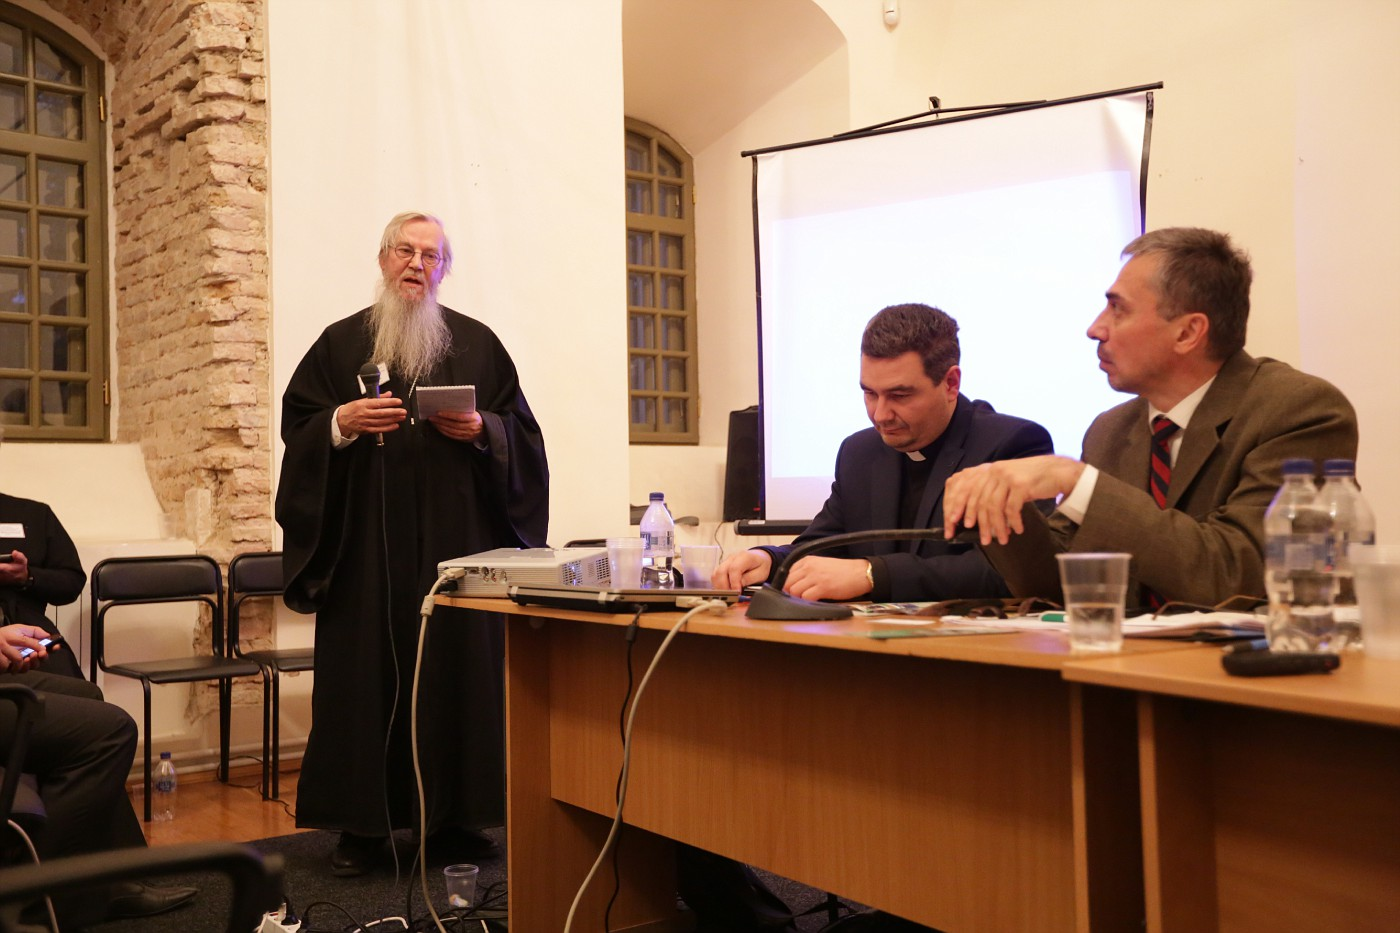 Rev. Philipp Vanderheyde at the round table. Sitting: Rev. Ihor Shaban and Dr. Constantin Sigov